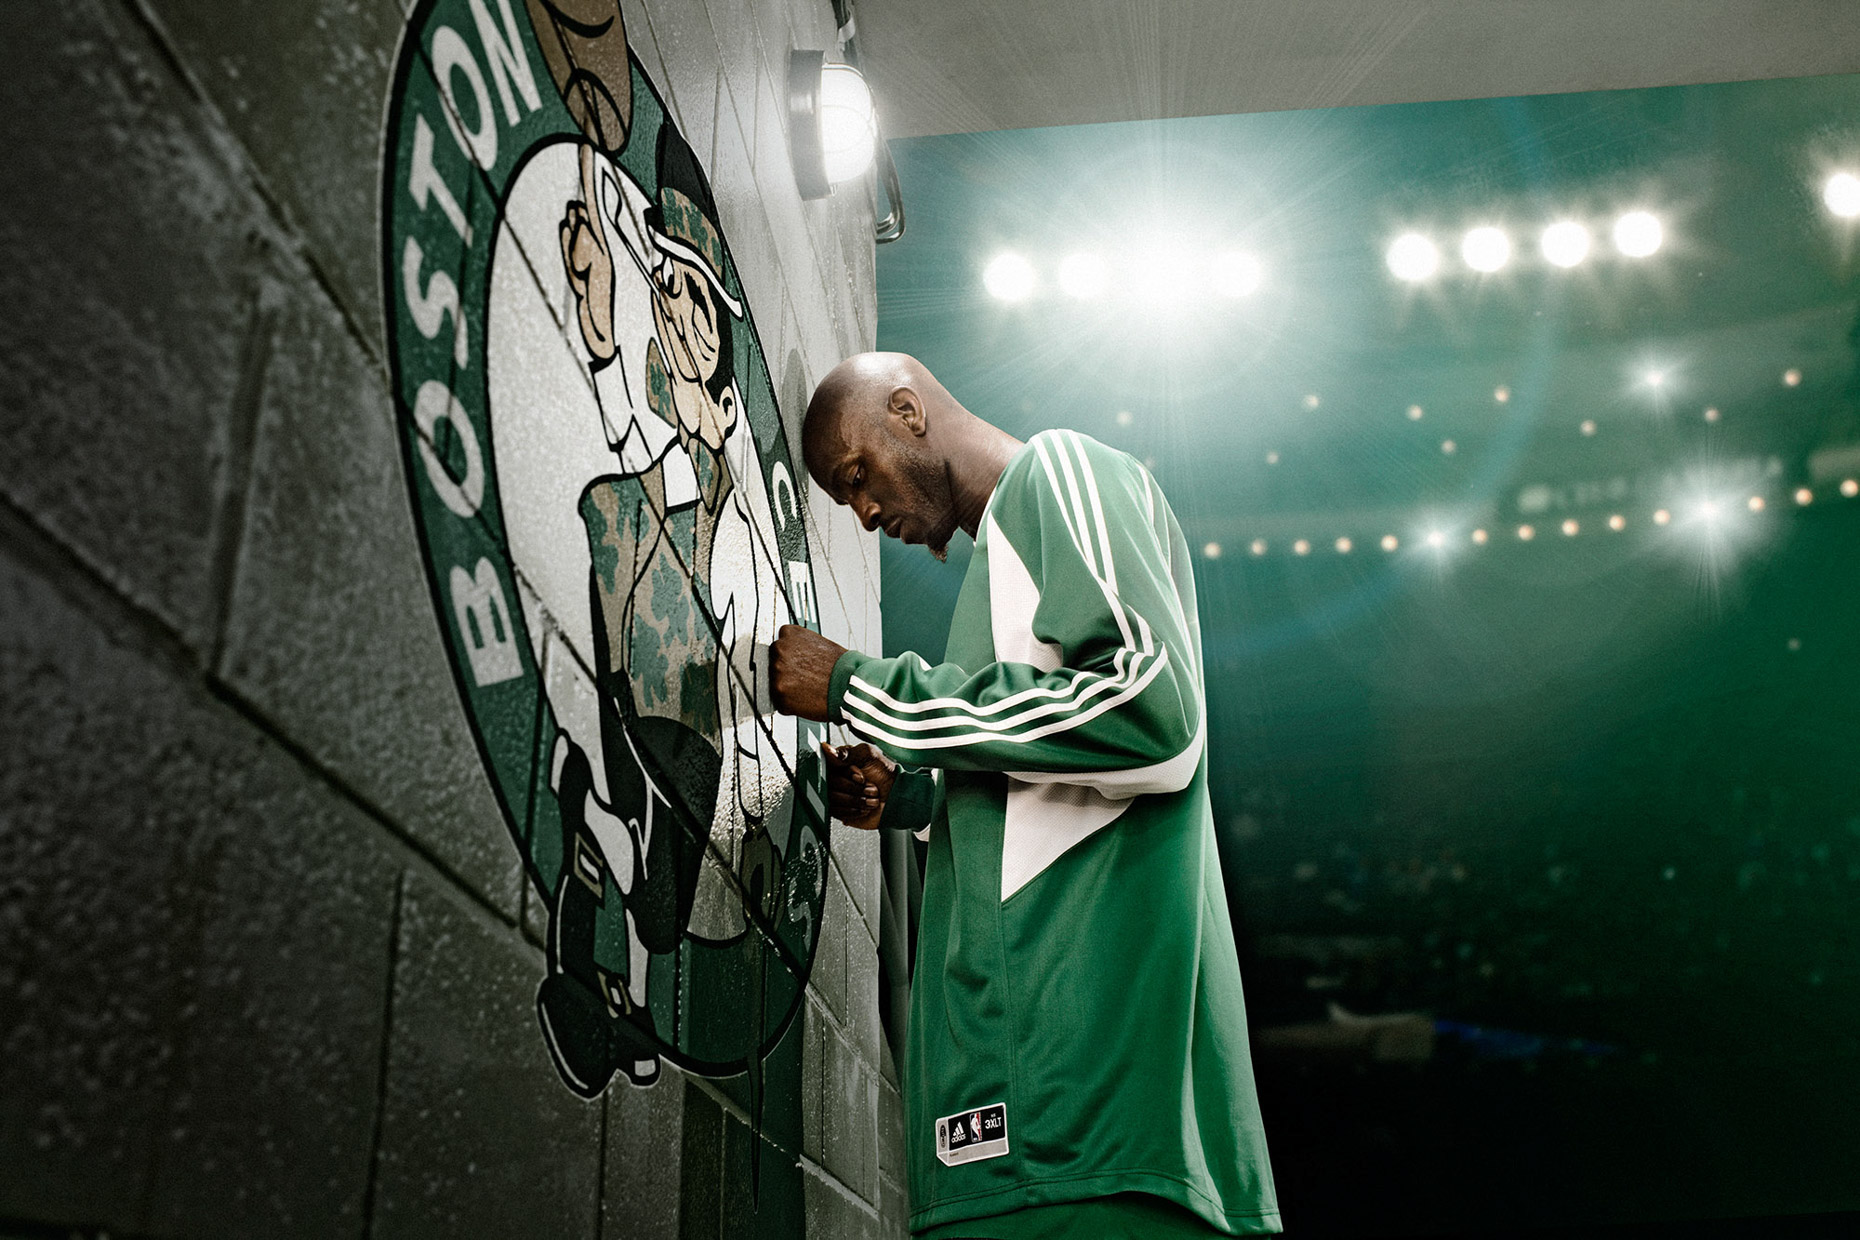 NBA basketball legend Kevin Garnett for adidas